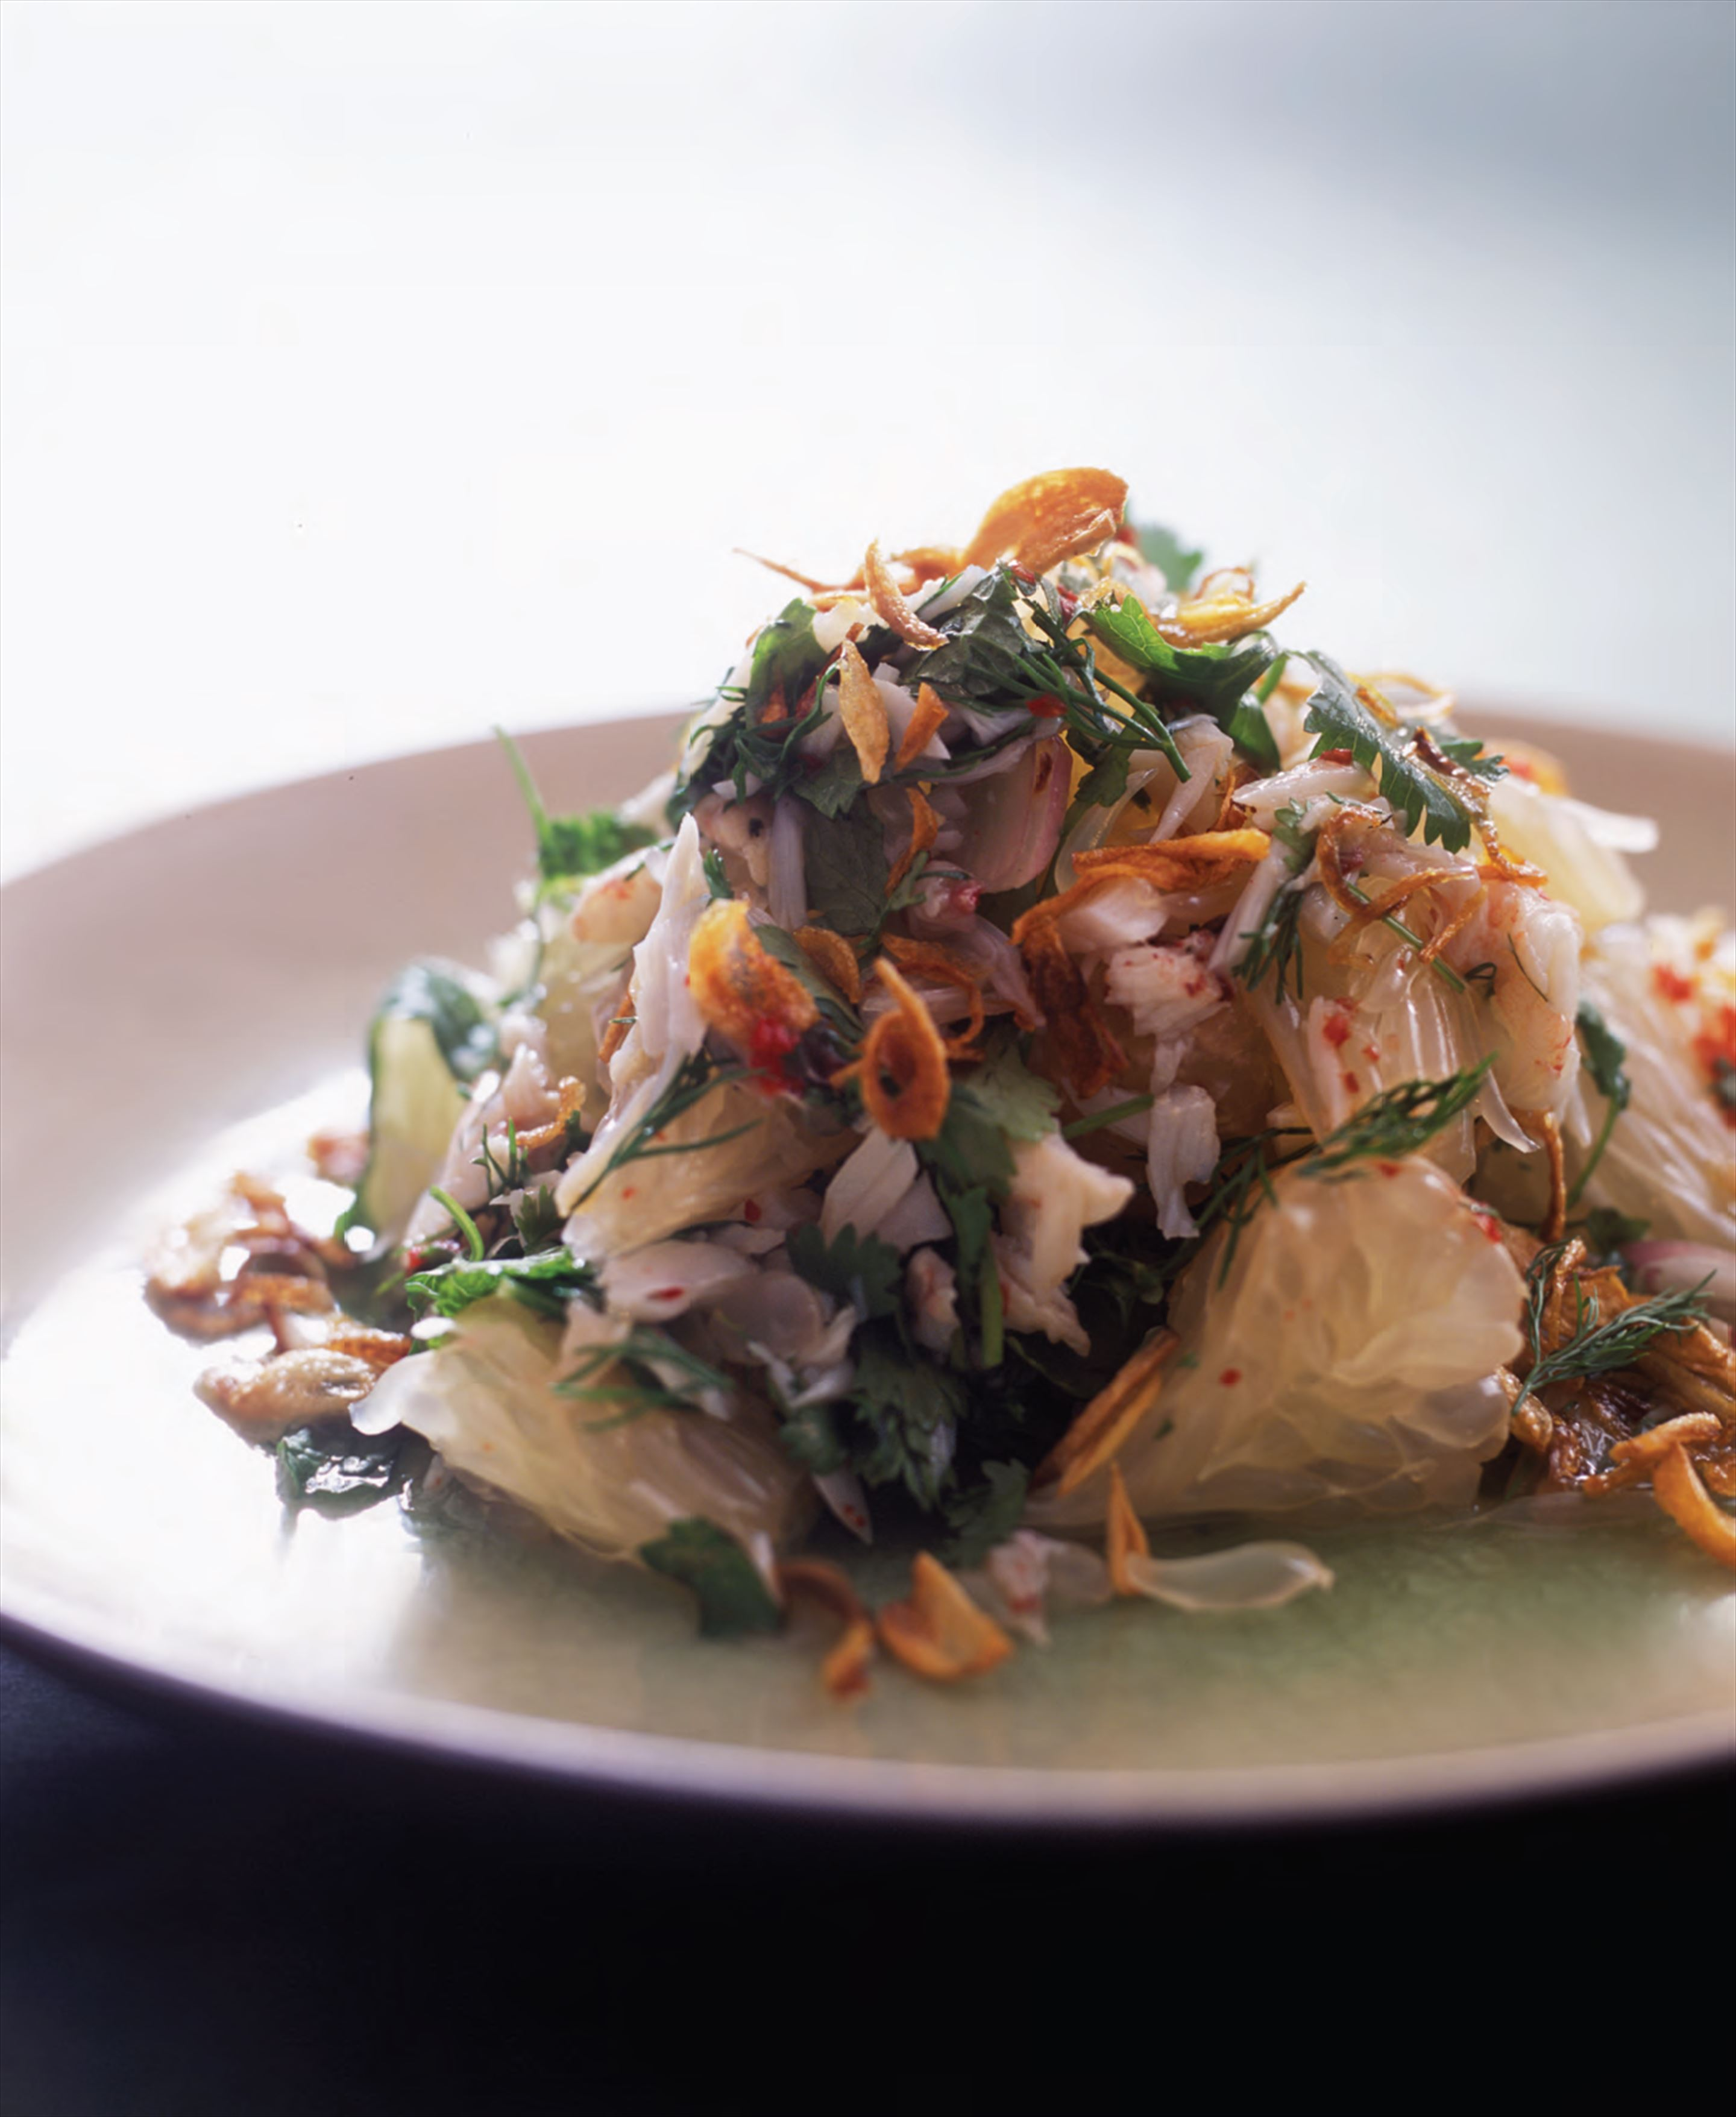 Crab and pomelo salad